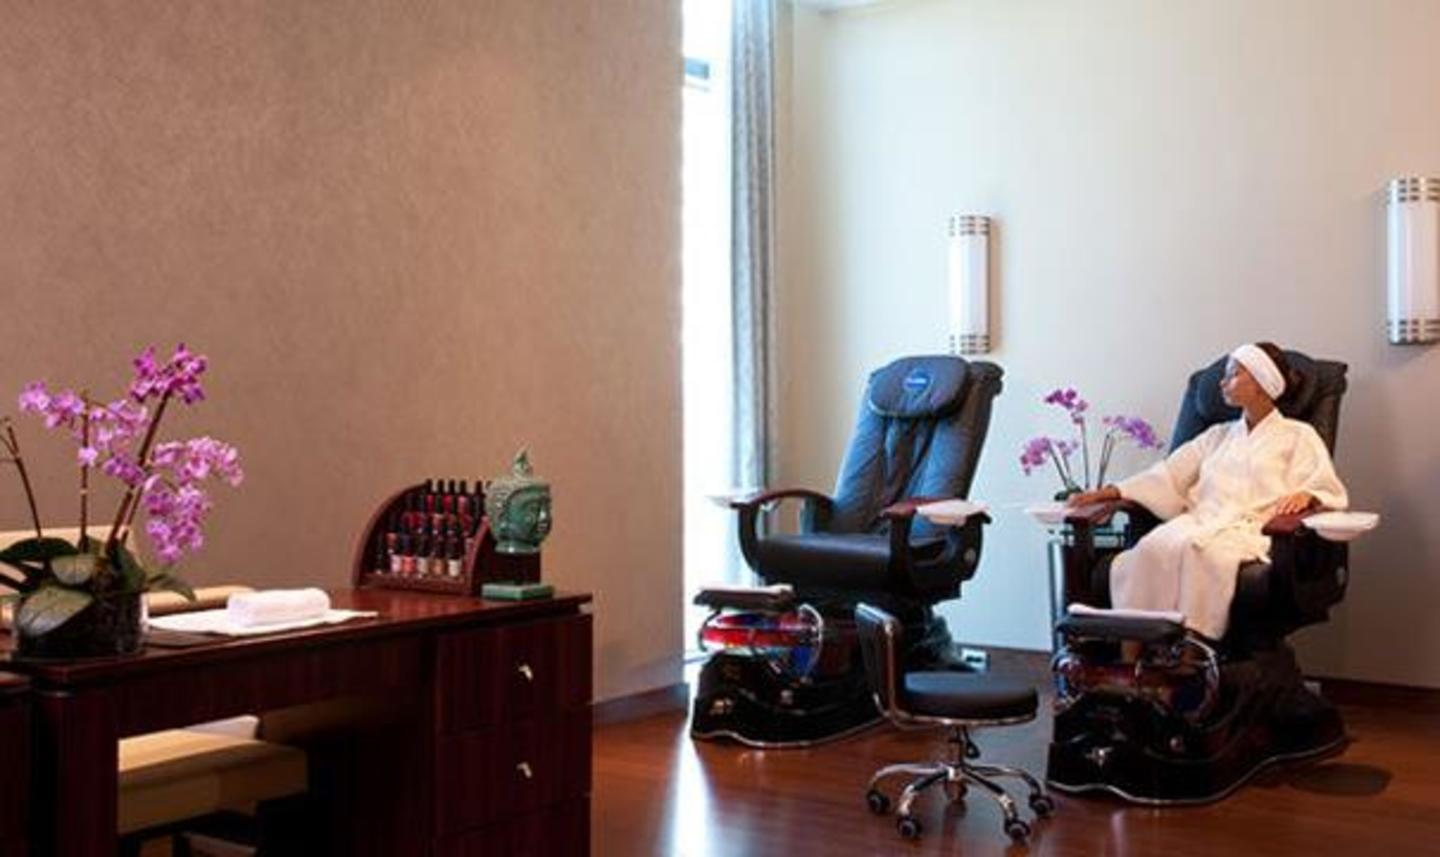 Full service salon for hair and nails.